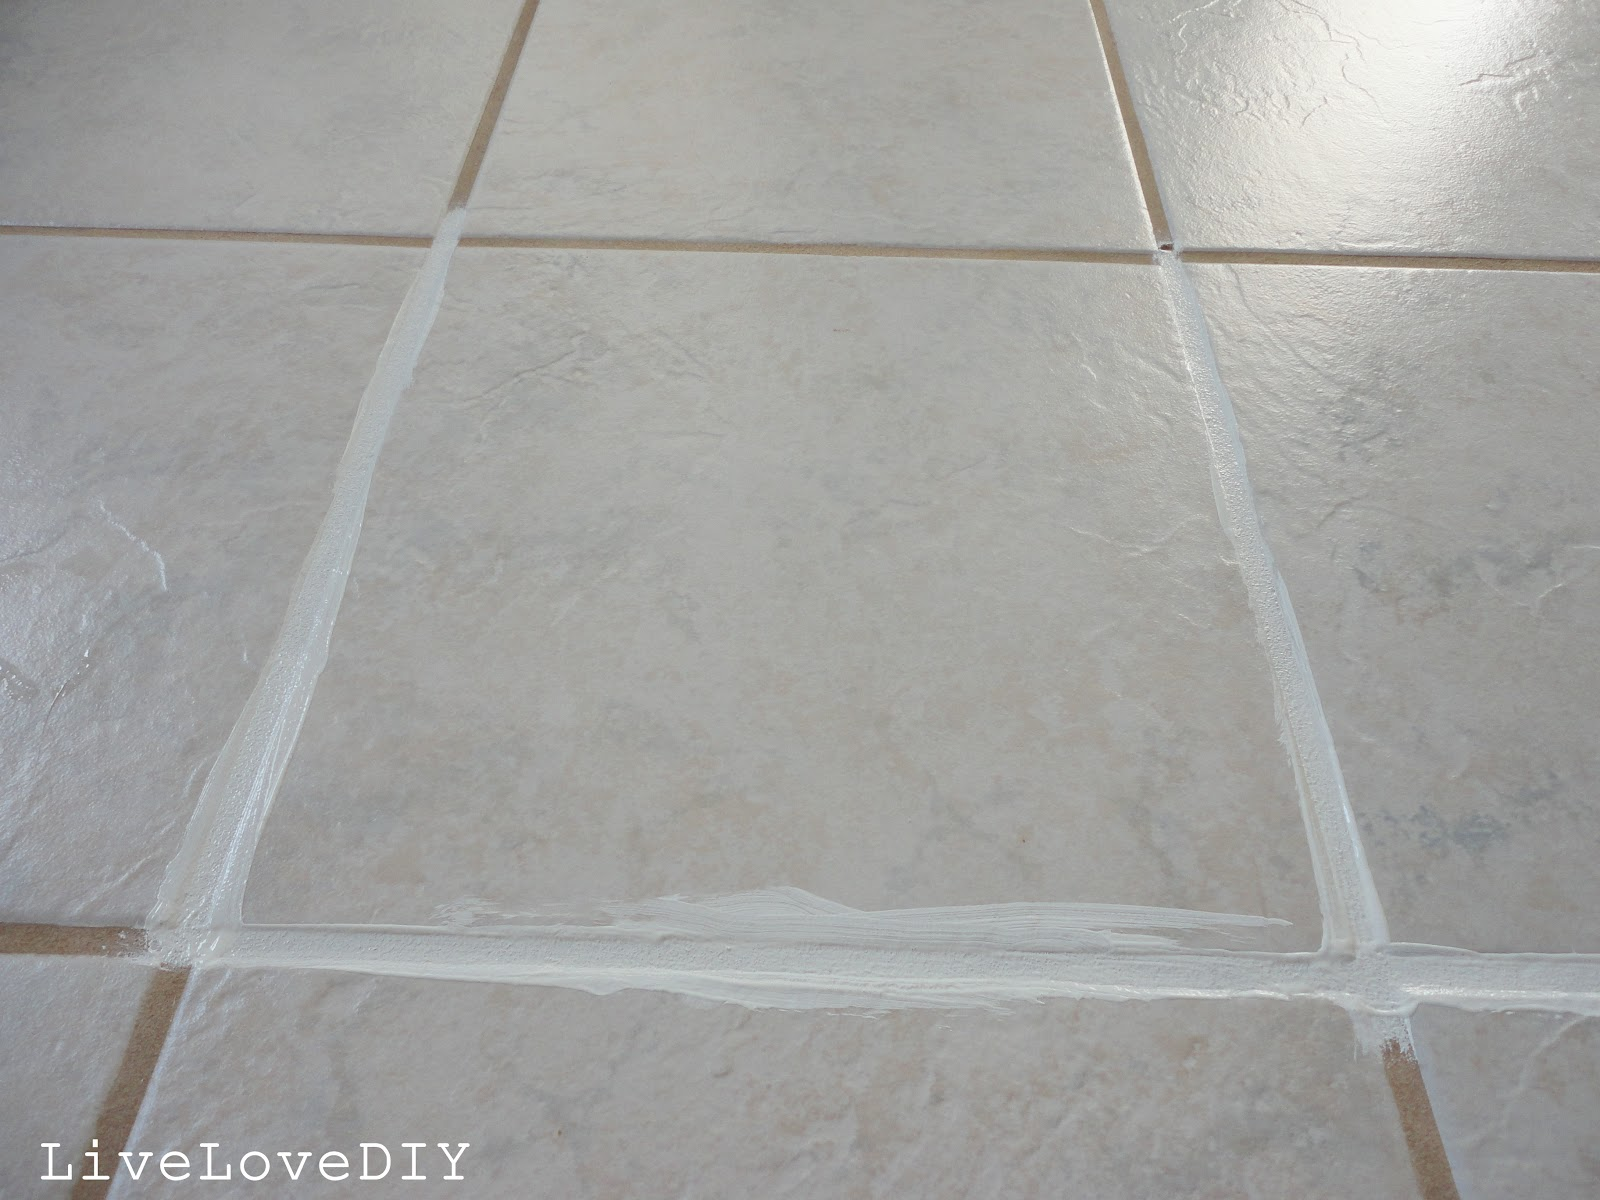 Bathroom Grout Cleaner livelovediy: how to restore dirty tile grout